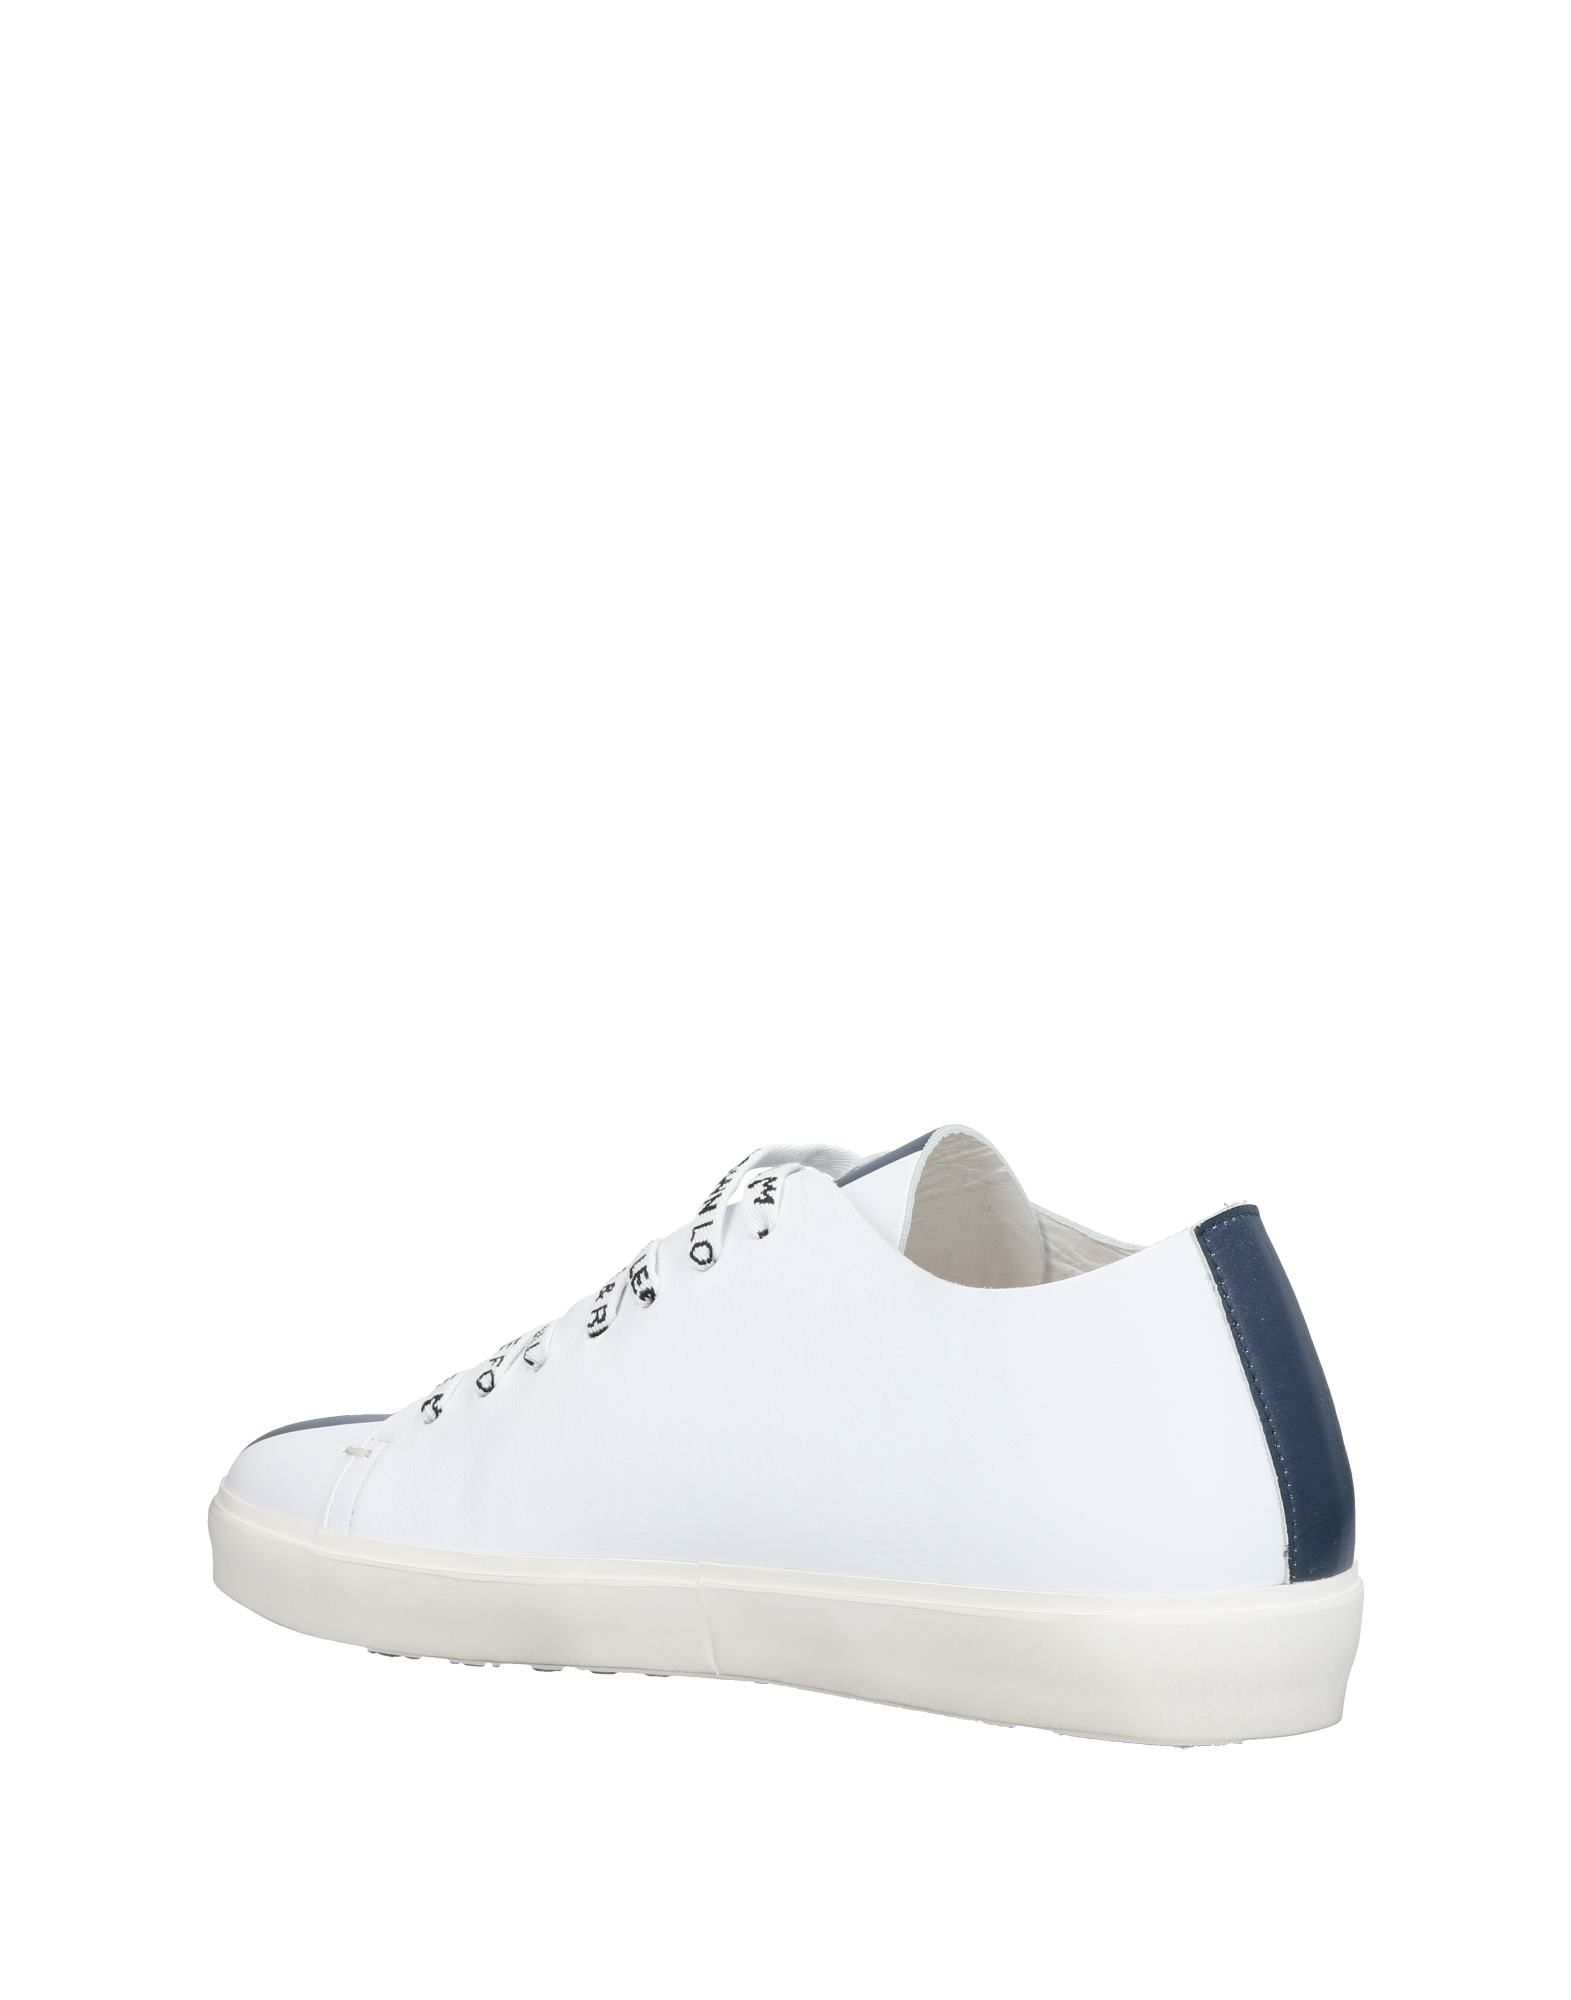 Leather Leather Leather Crown Sneakers - Men Leather Crown Sneakers online on  Canada - 11453691RJ fb18f4